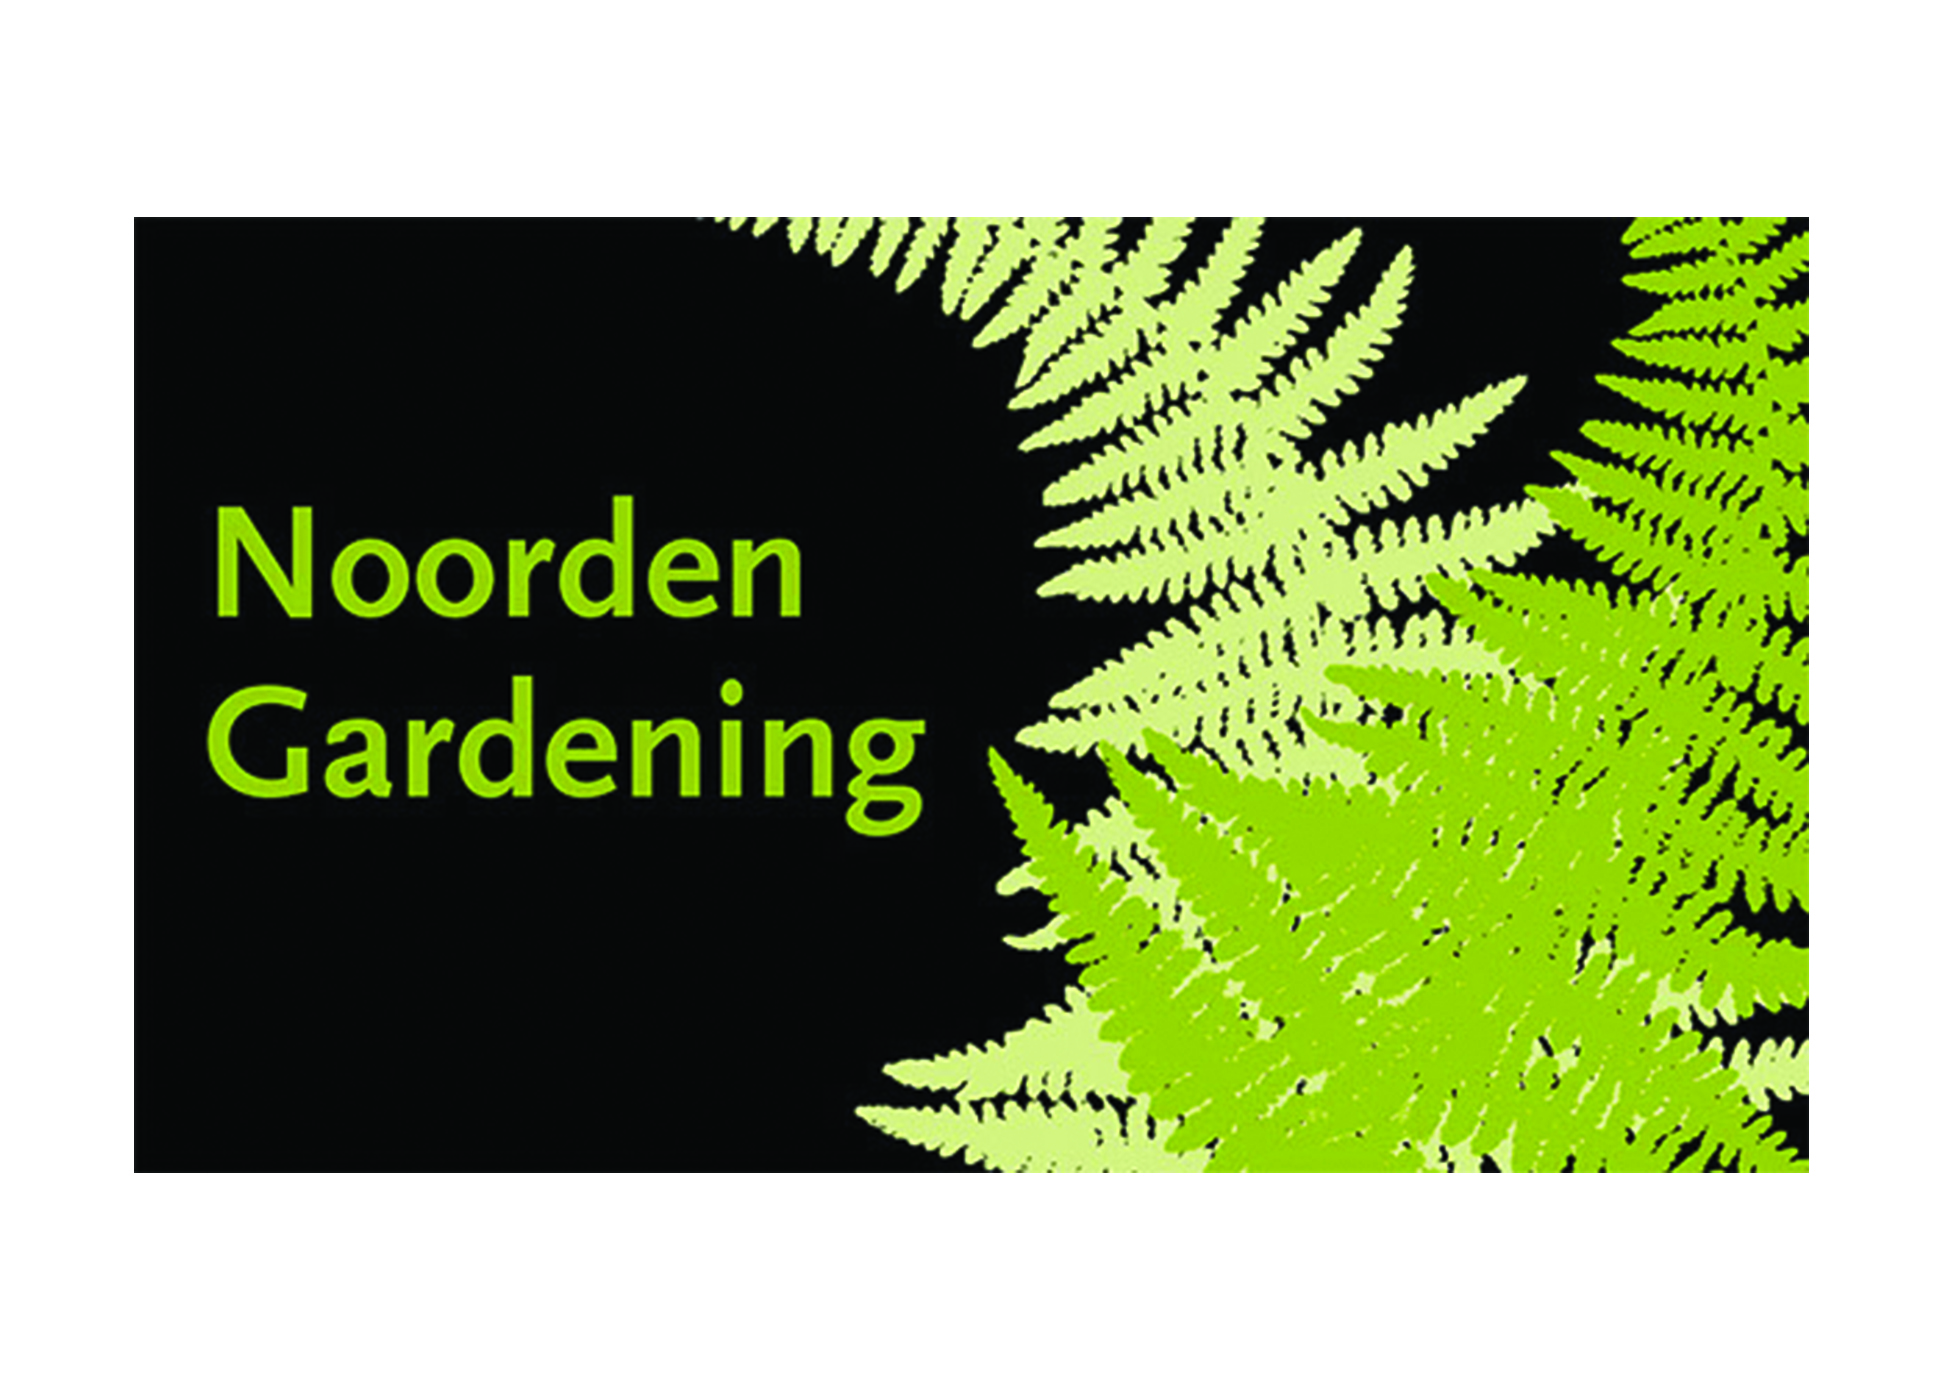 Stefan van Norden is a great gardener and filmmaker.